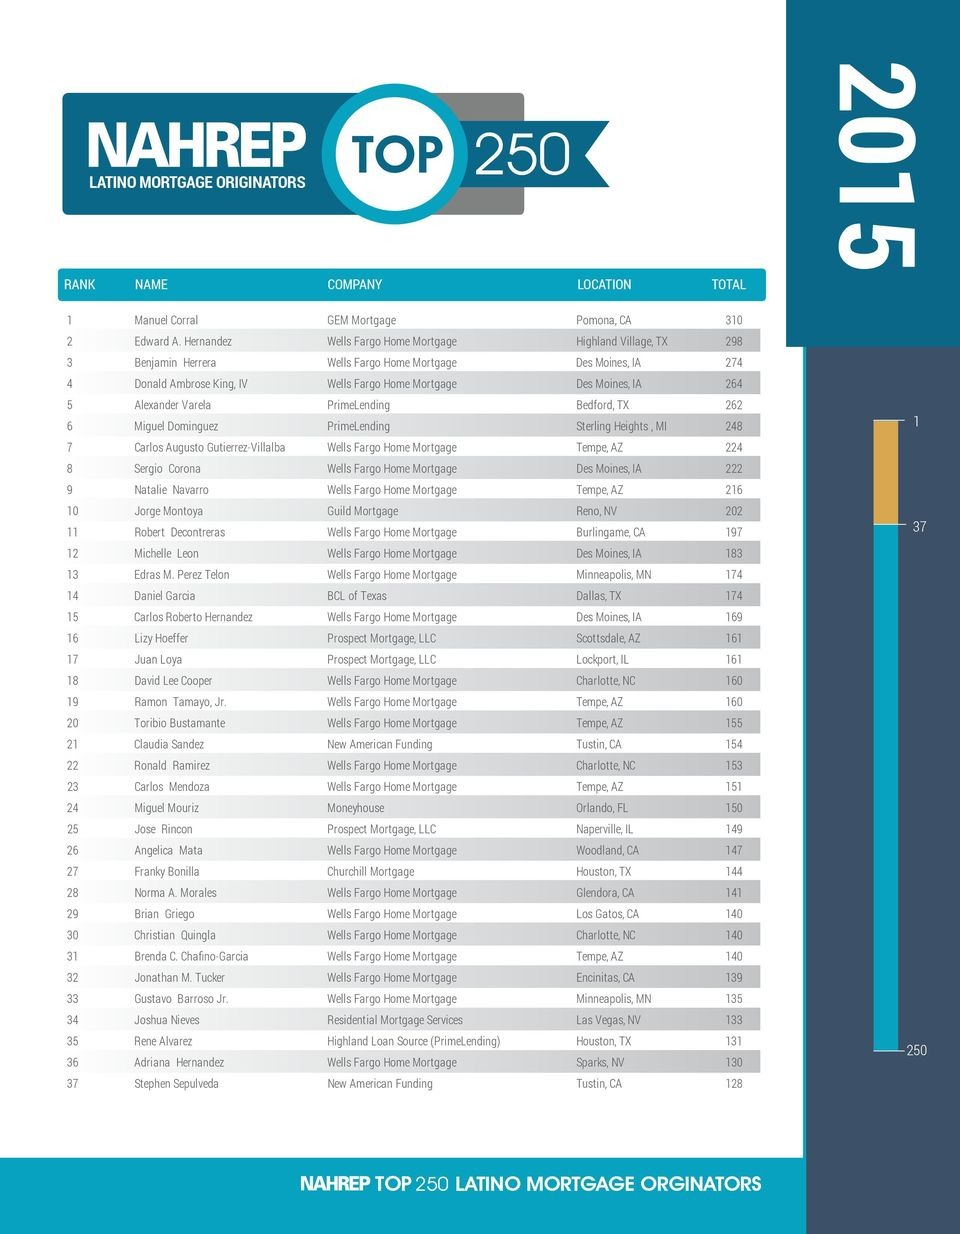 TOP LATINO MORTGAGE ORIGINATORS  A report by the National